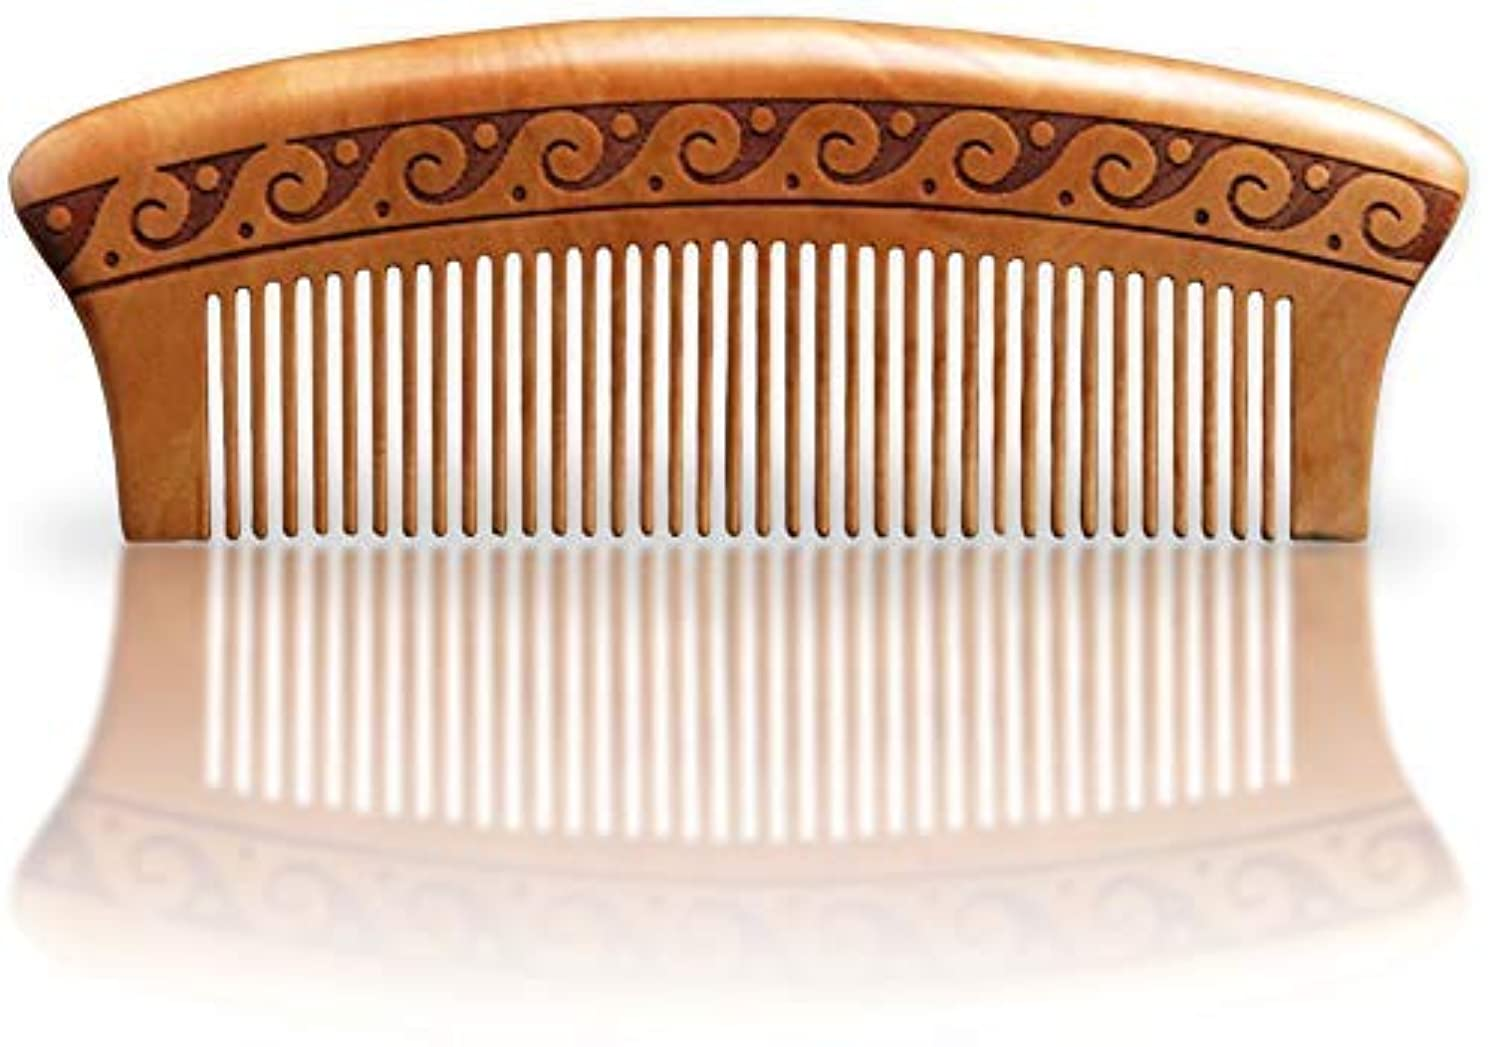 神の急性プレフィックスBRIGHTFROM Wooden Hair Comb, Anti-Static, Detangling, Great for Hair, Beard, Mustache, Natural Peach Wood [並行輸入品]